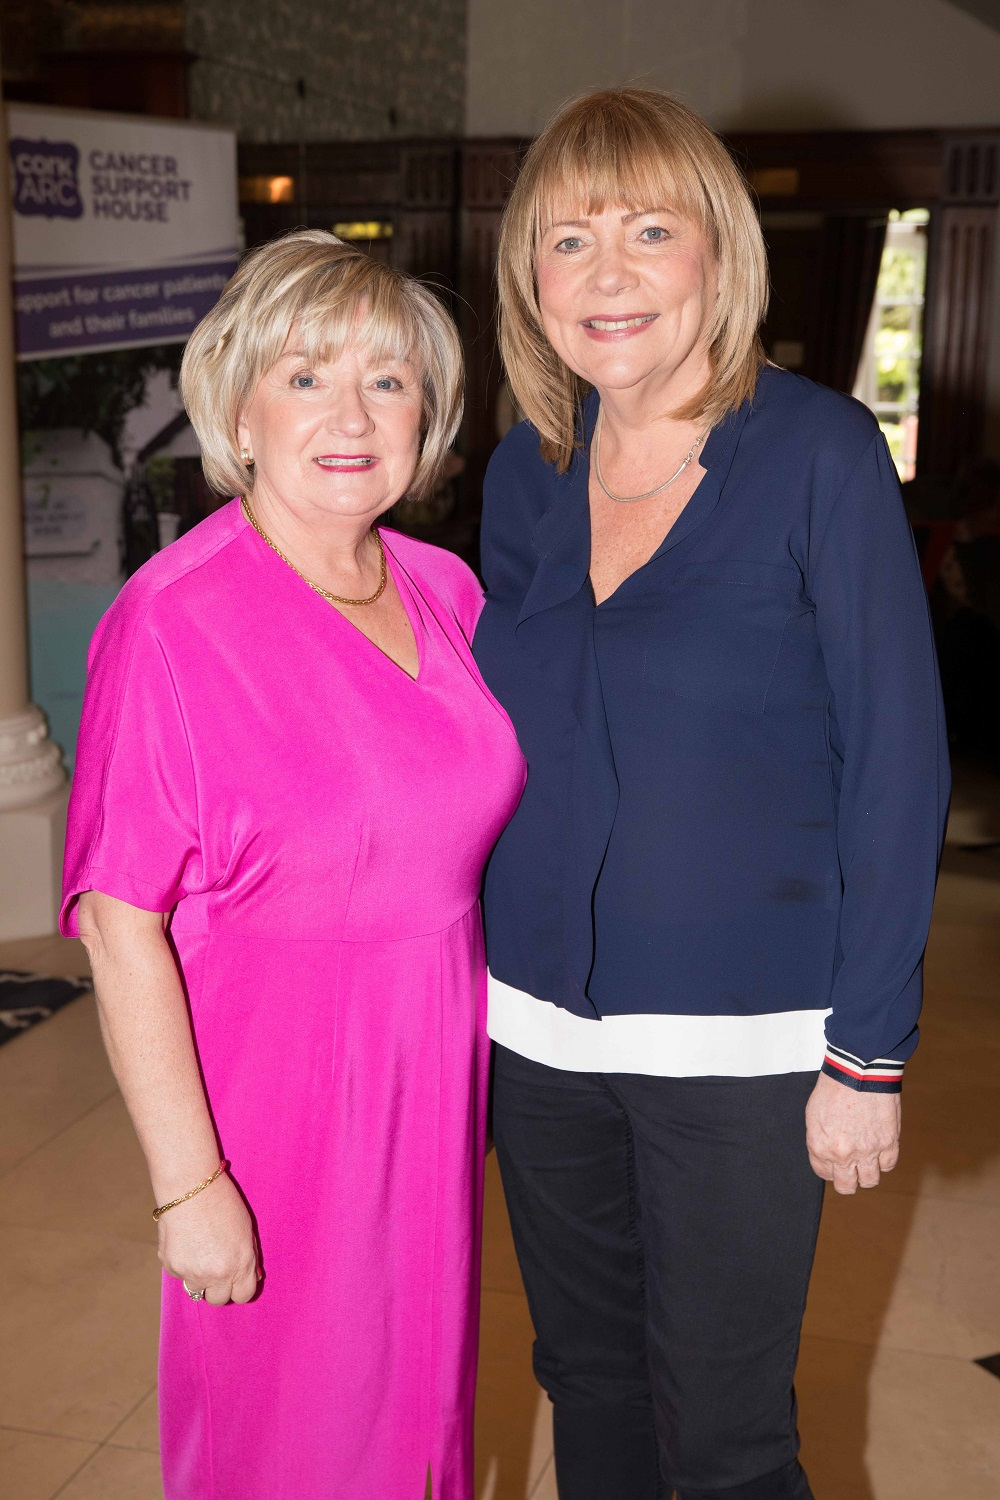 Letitia Clynch, Dunnes Stores and Eithne Barry